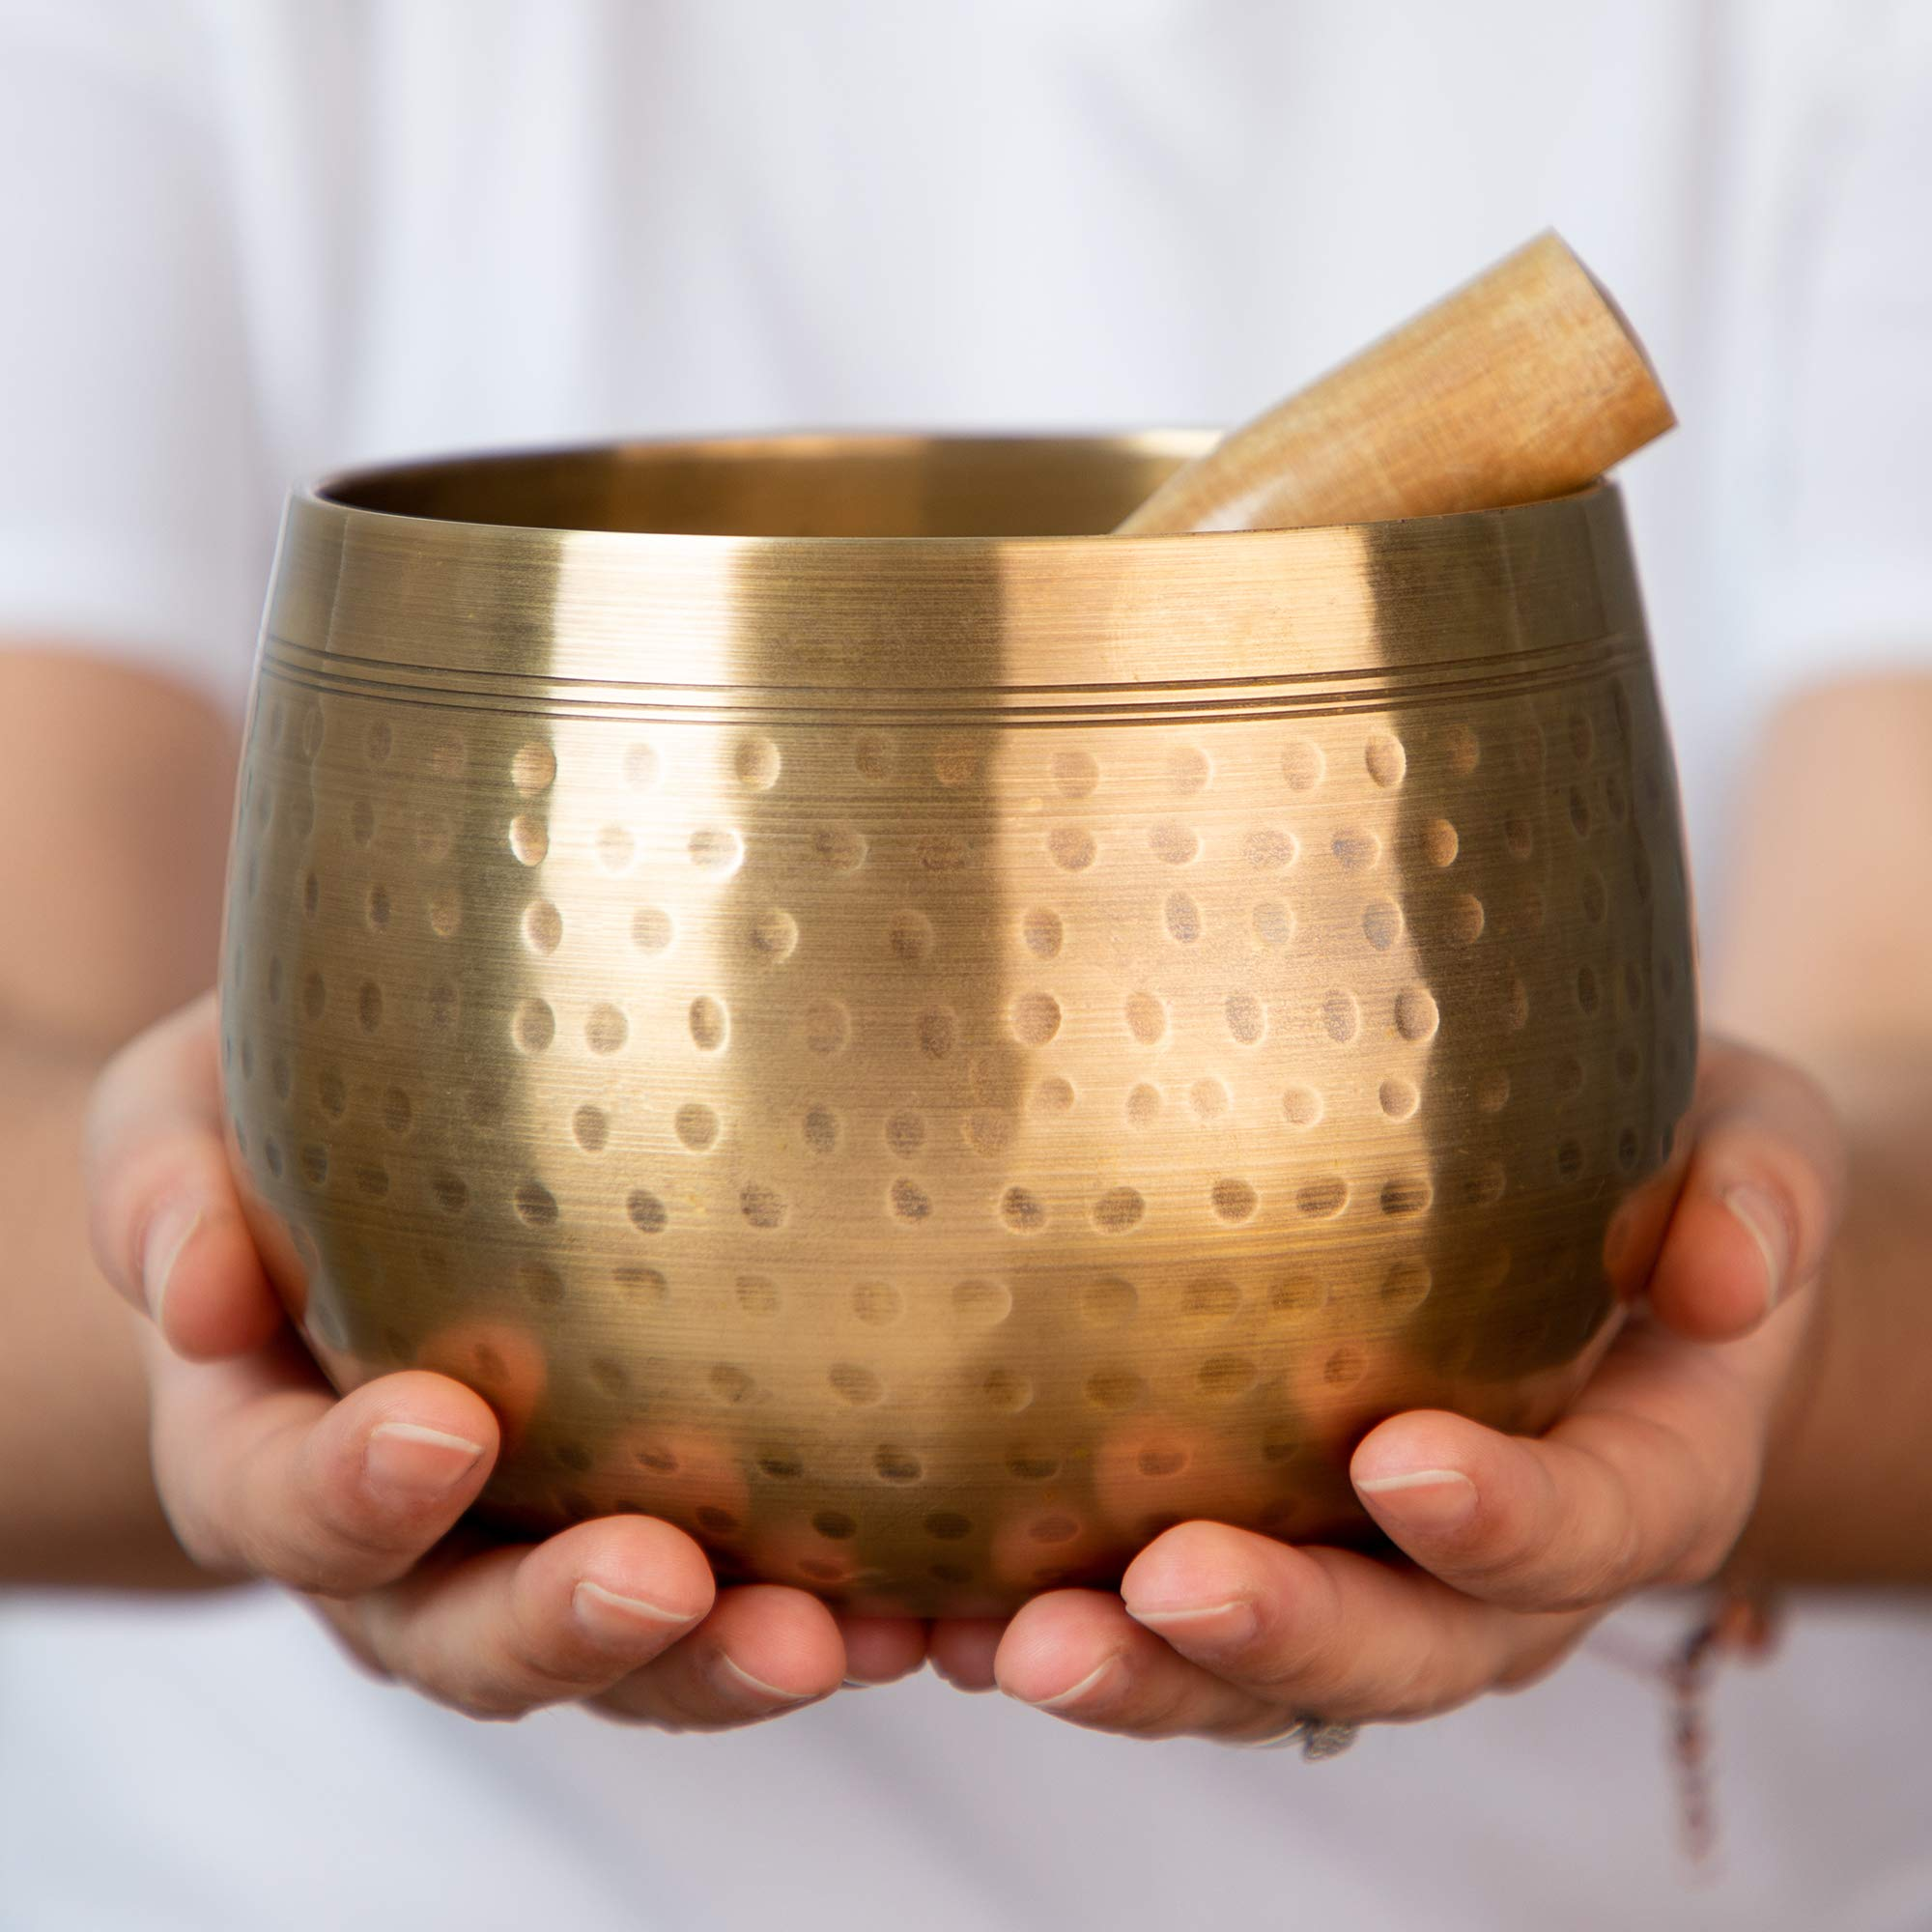 Meditative Brass Singing Bowl with Mallet and Cushion  -Tibetan Sound Bowls for Energy Healing, Mindfulness, Grounding, Zen, Meditation  -  Exquisite, Unique Home Decor and Gift Sets by Telsha (Image #1)